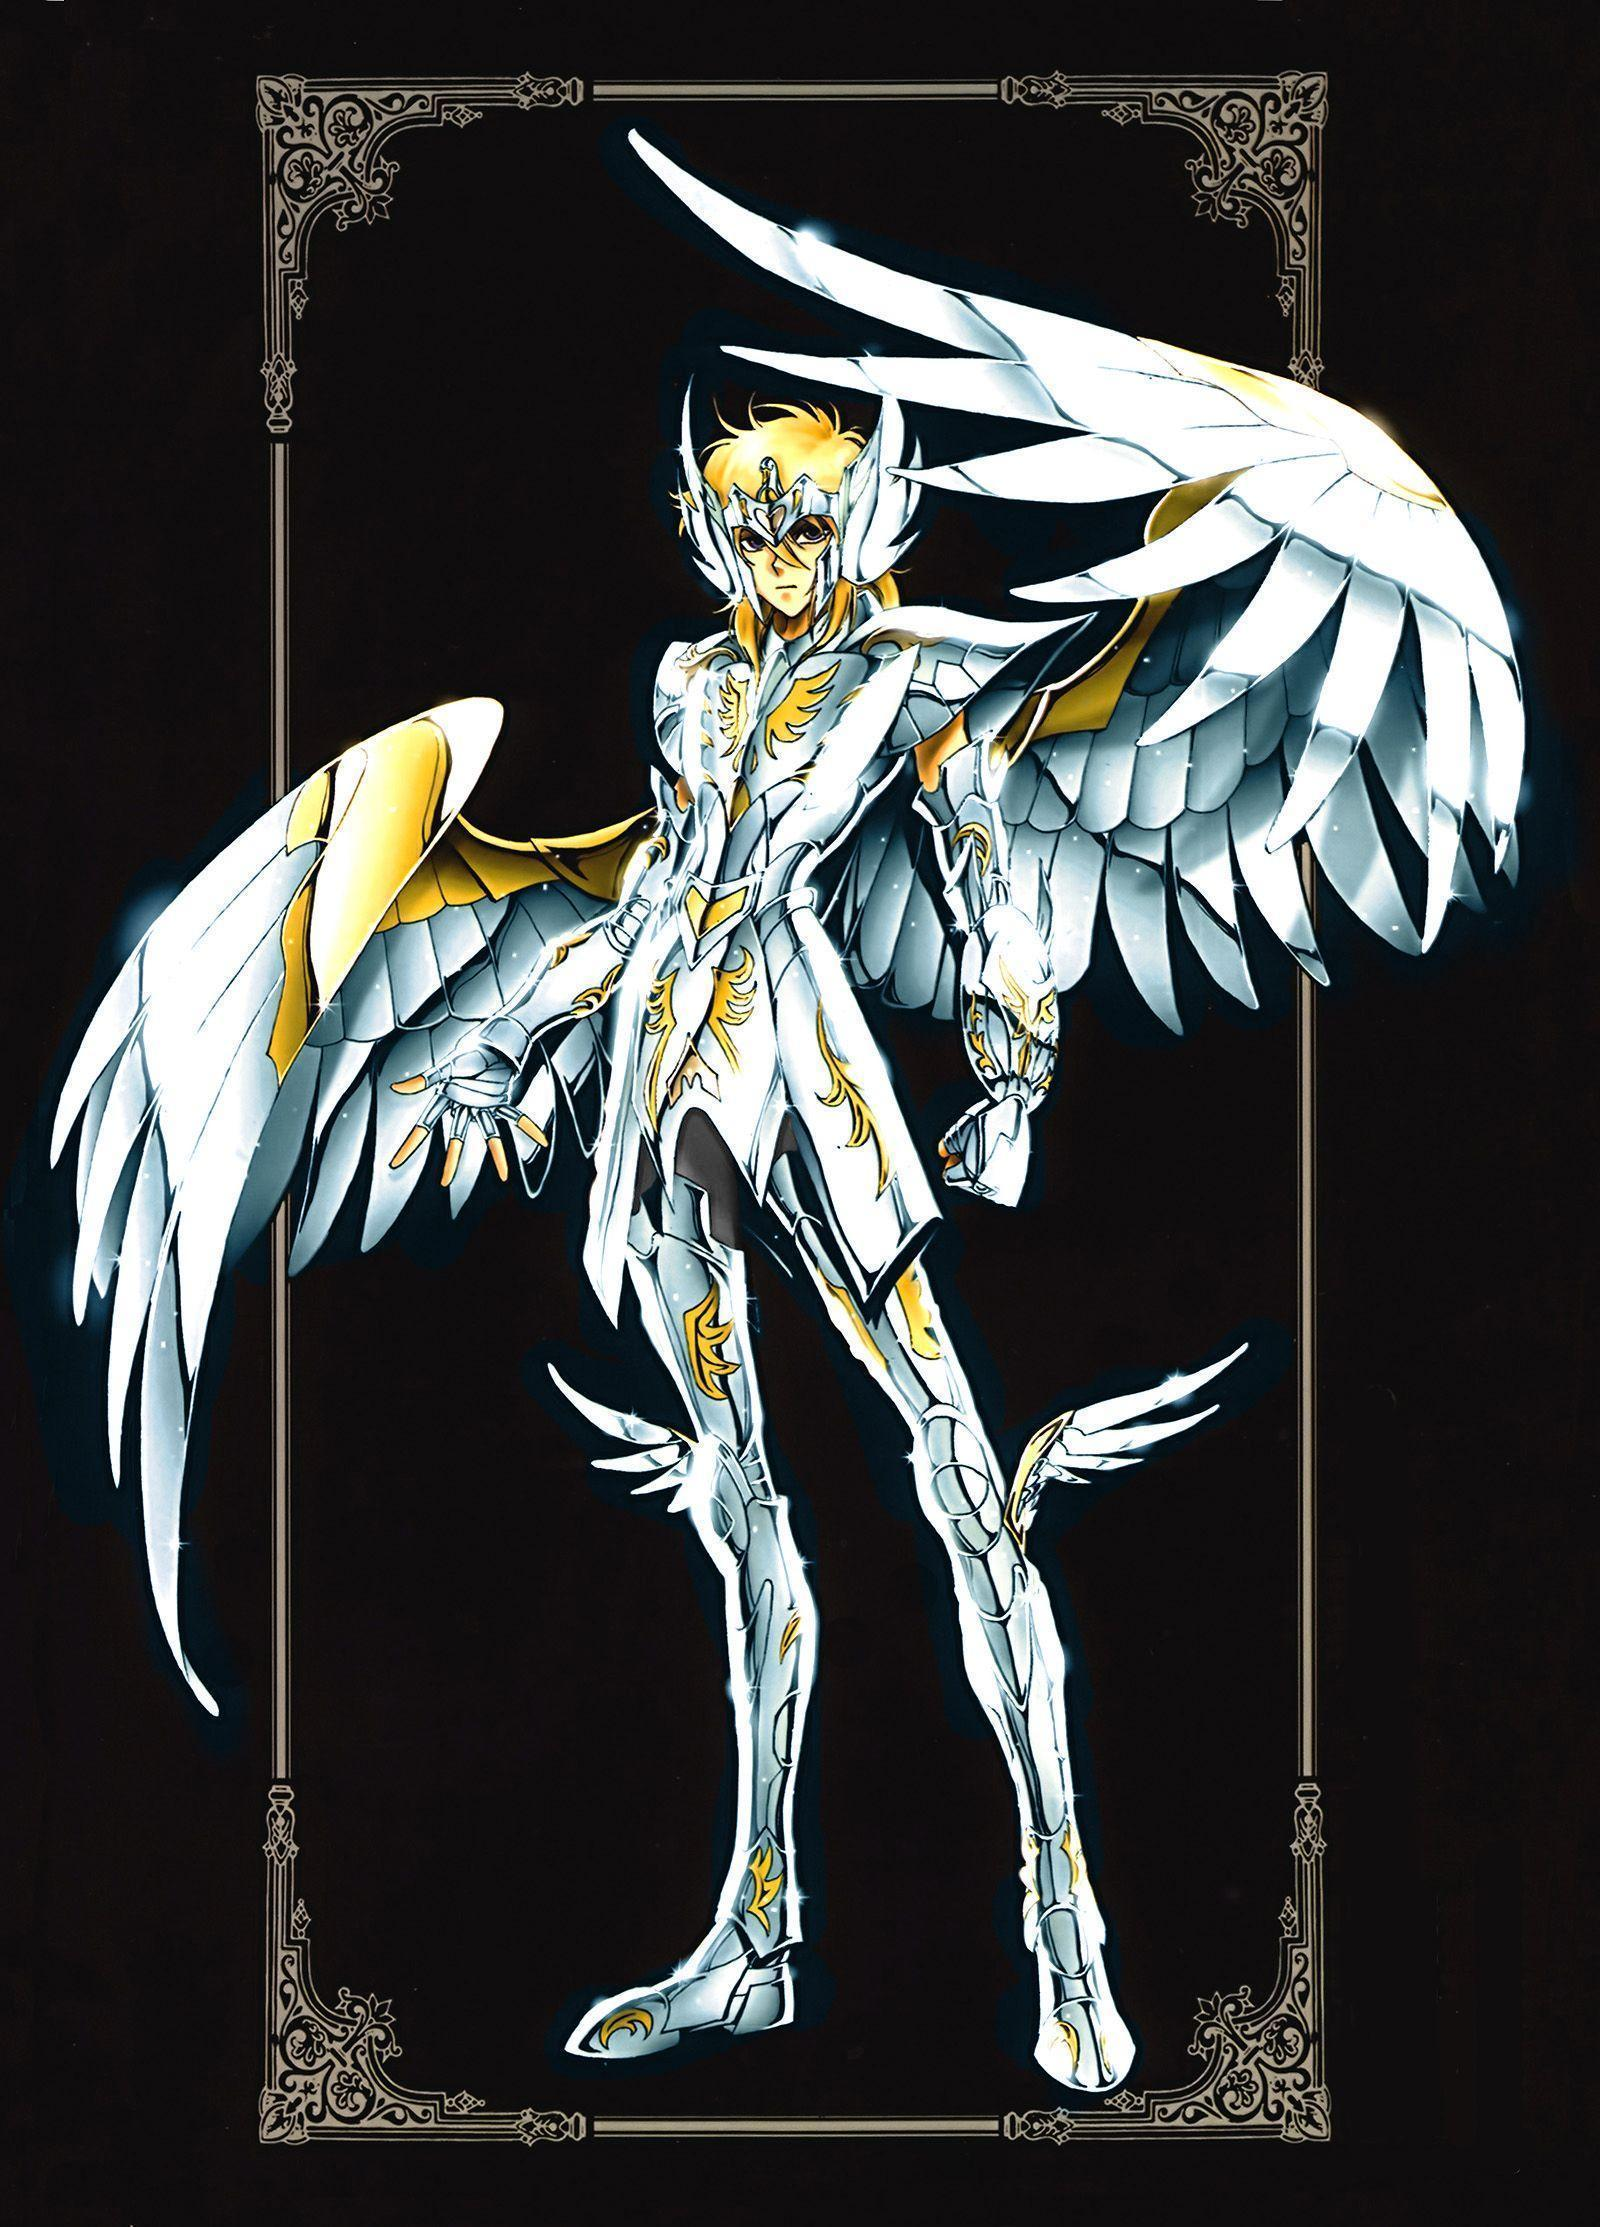 1000+ images about Saint Seiya on Pinterest